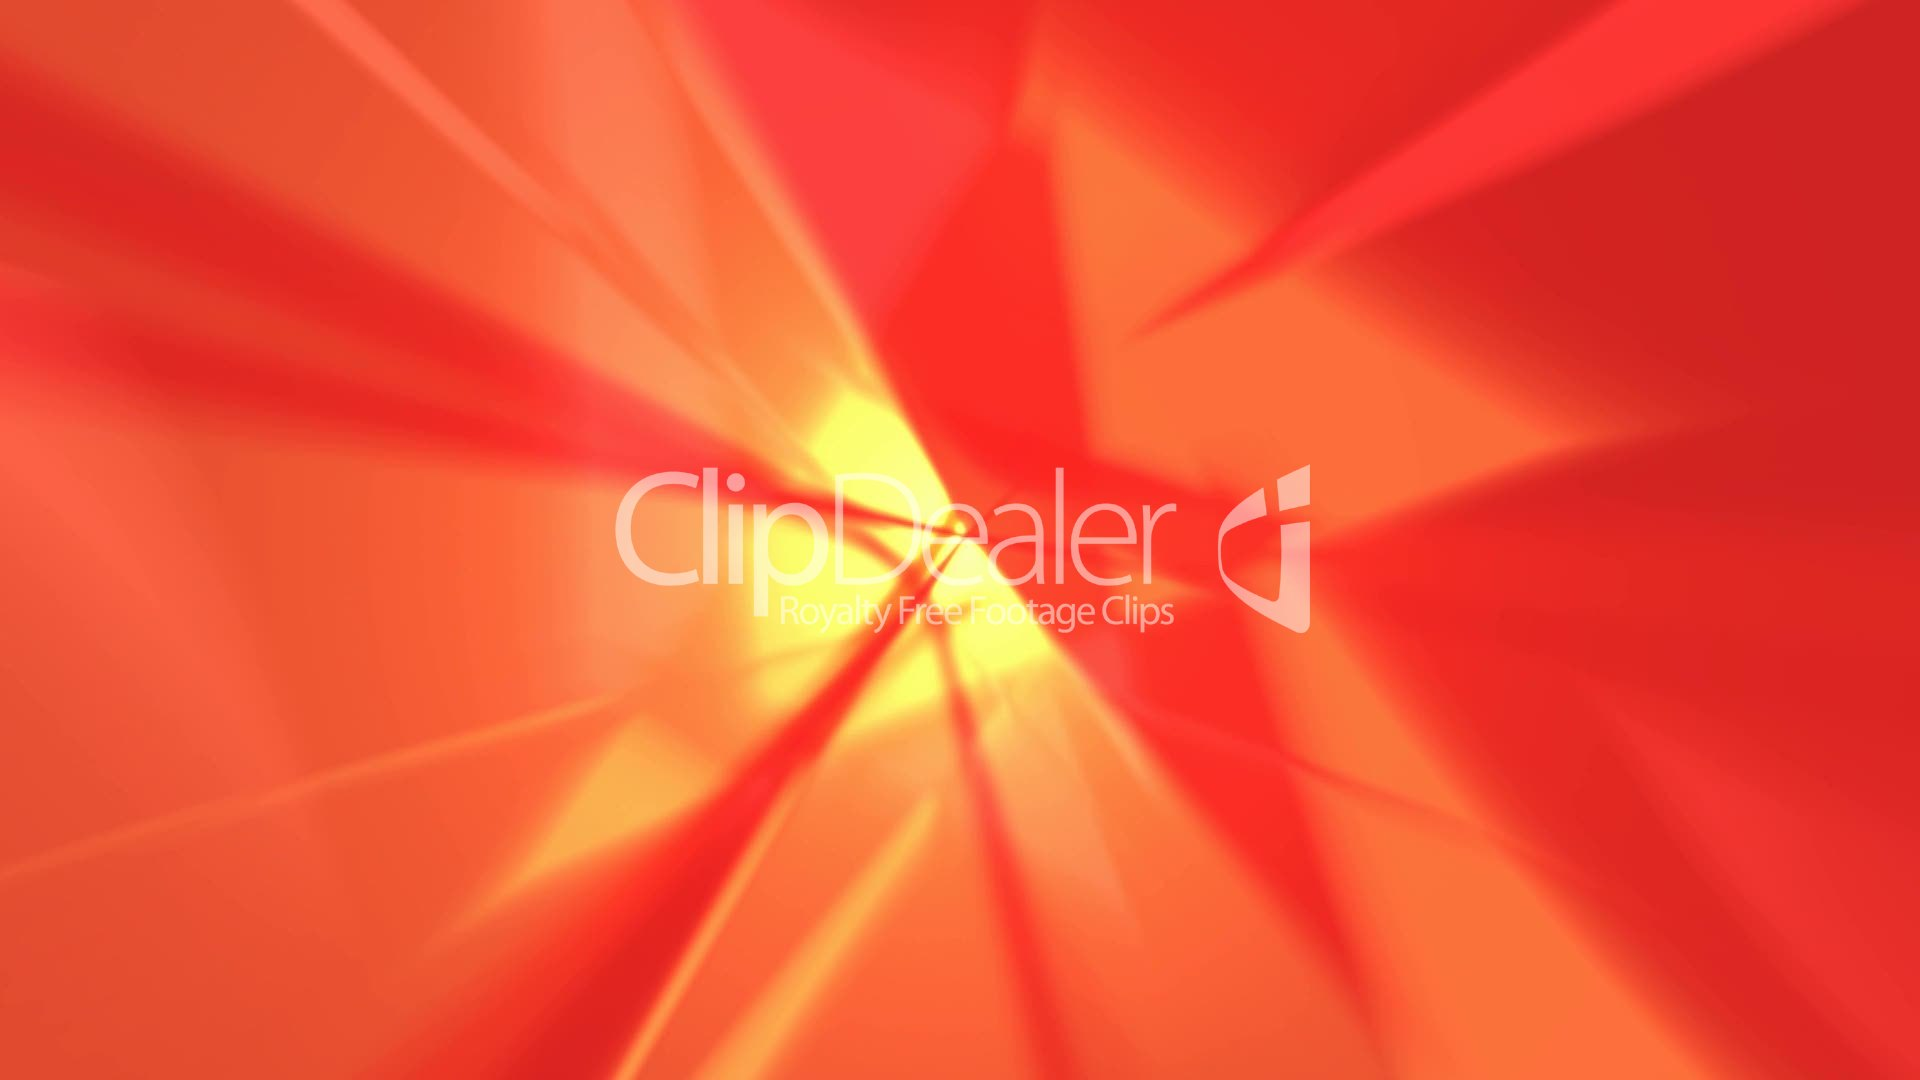 Hd Christbaumschmuck Royalty Free Video And Stock Footage Red Abstract Background Loop Hd 25 Fps Royalty Free